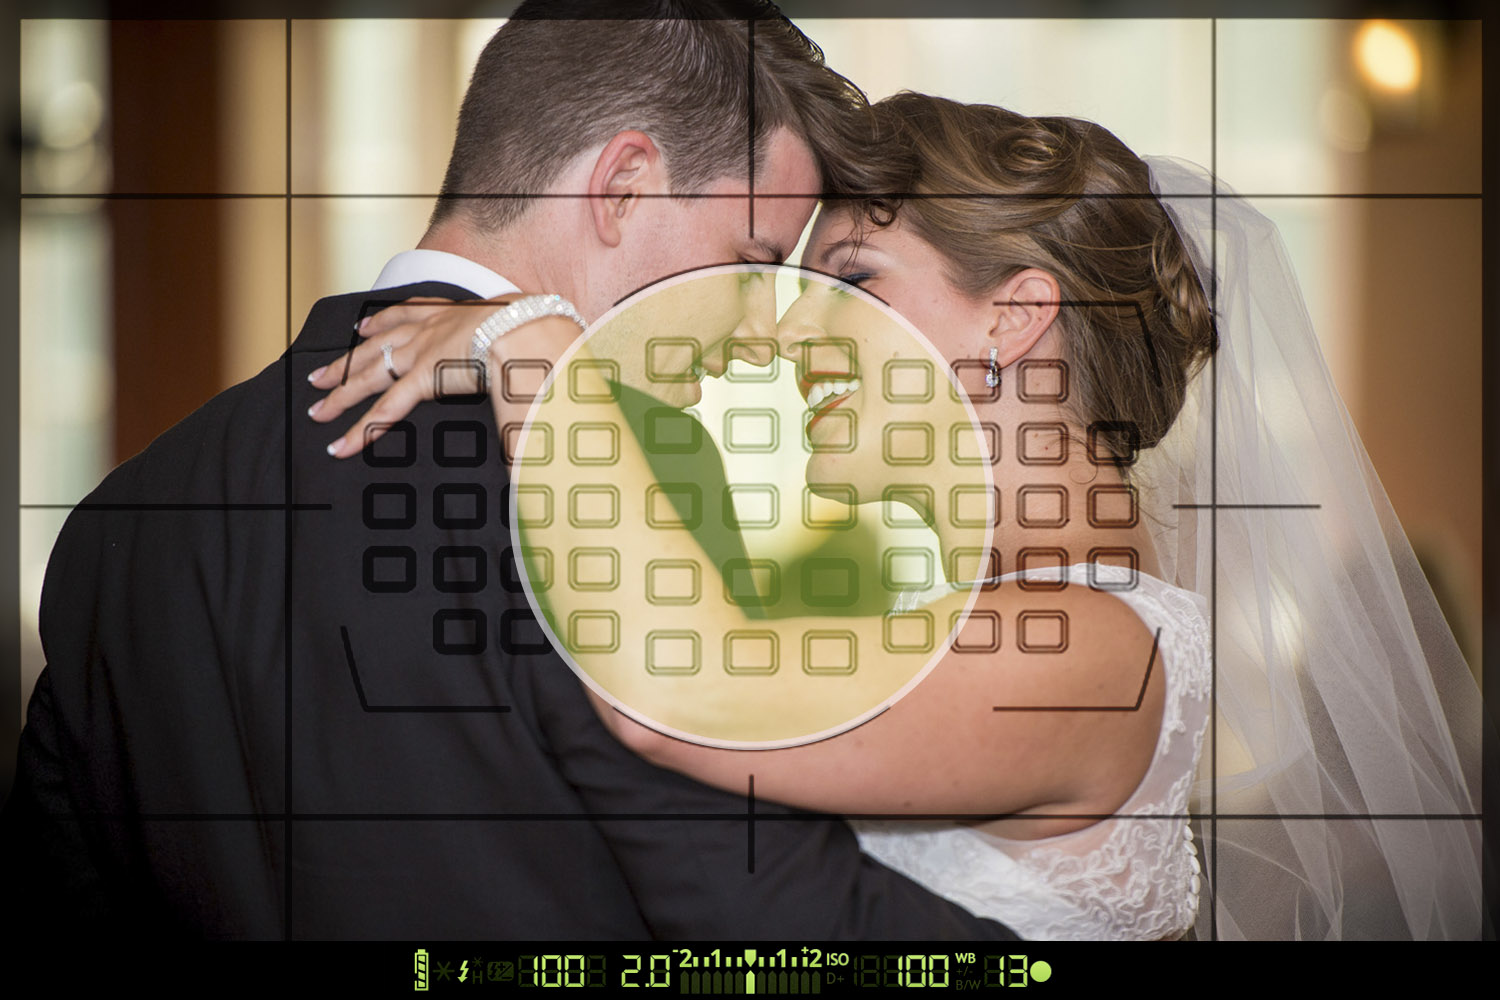 A wedding photo overlaid with the sample area of center-weighted metering